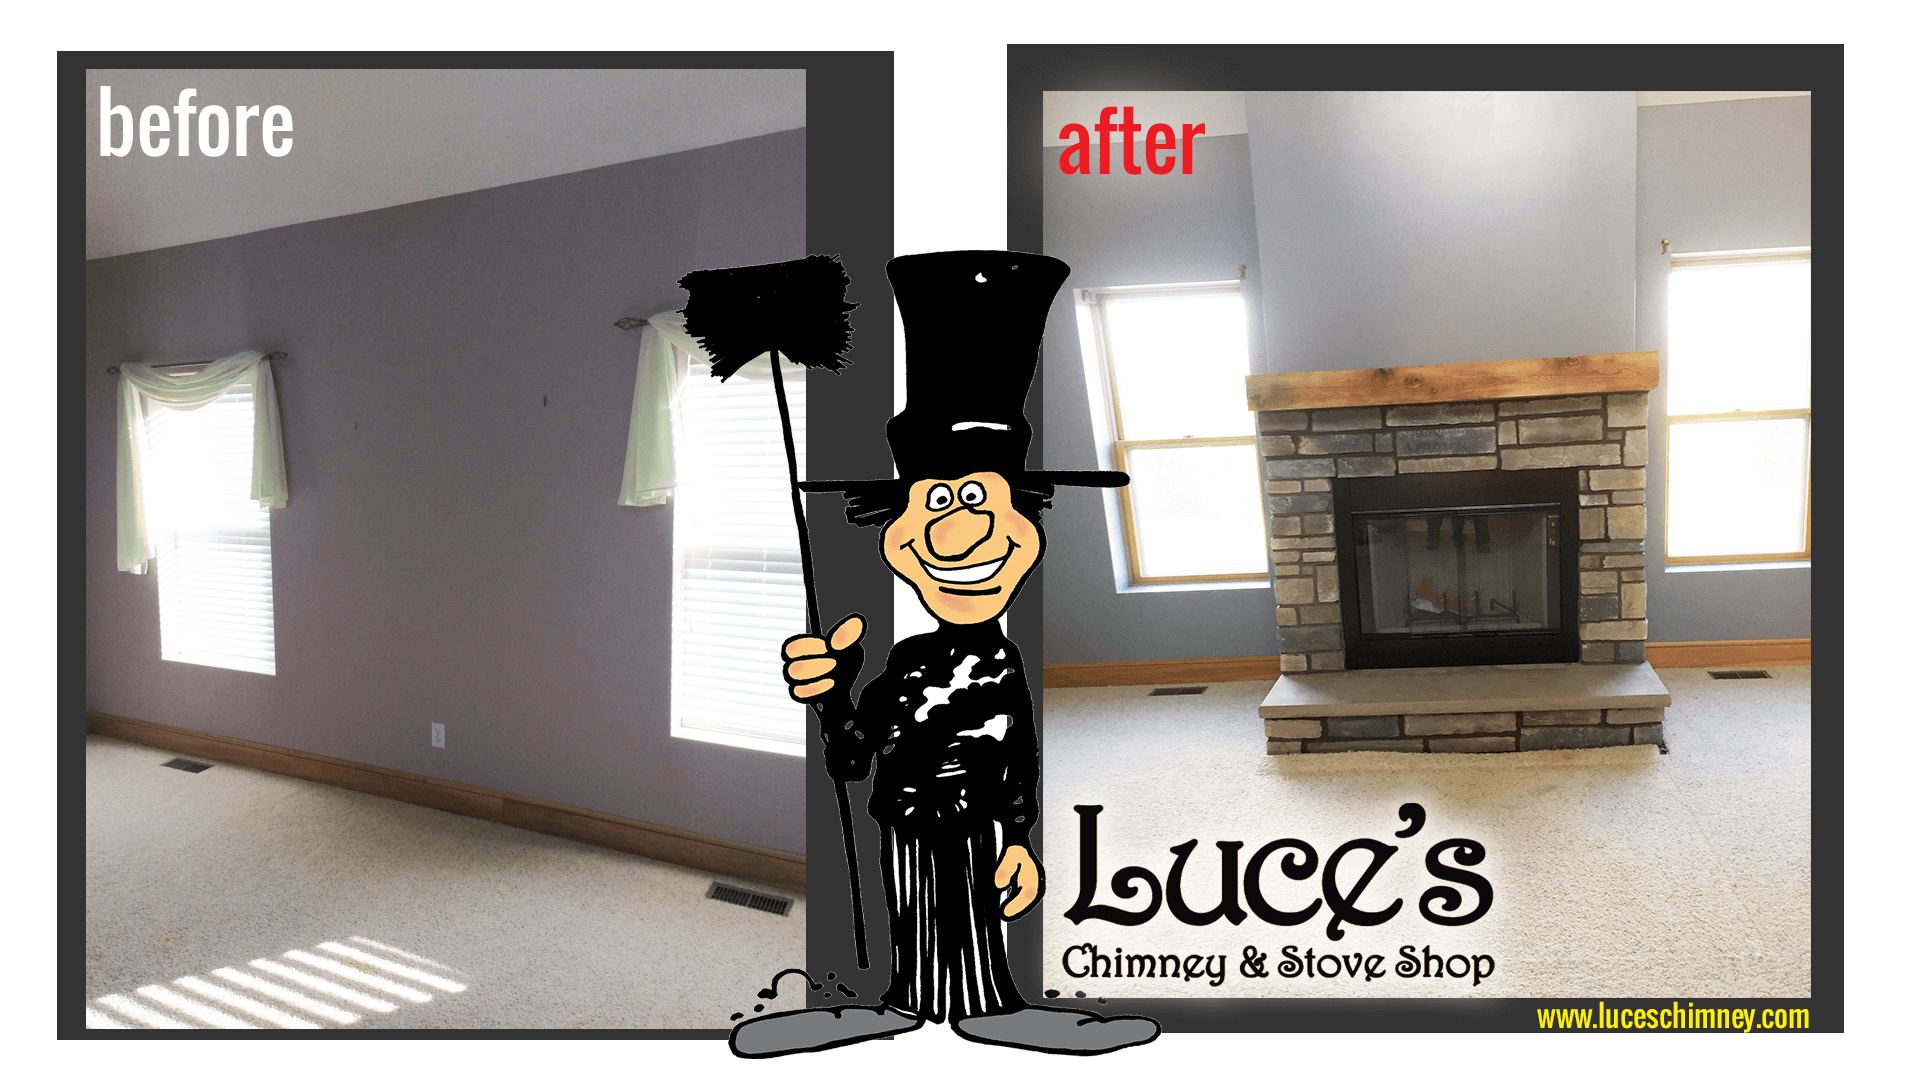 Fireplace design and installation. Stone fireplace design by Luce's Chimney and Stove Shop, serving Ohio, Michigan and Indiana.